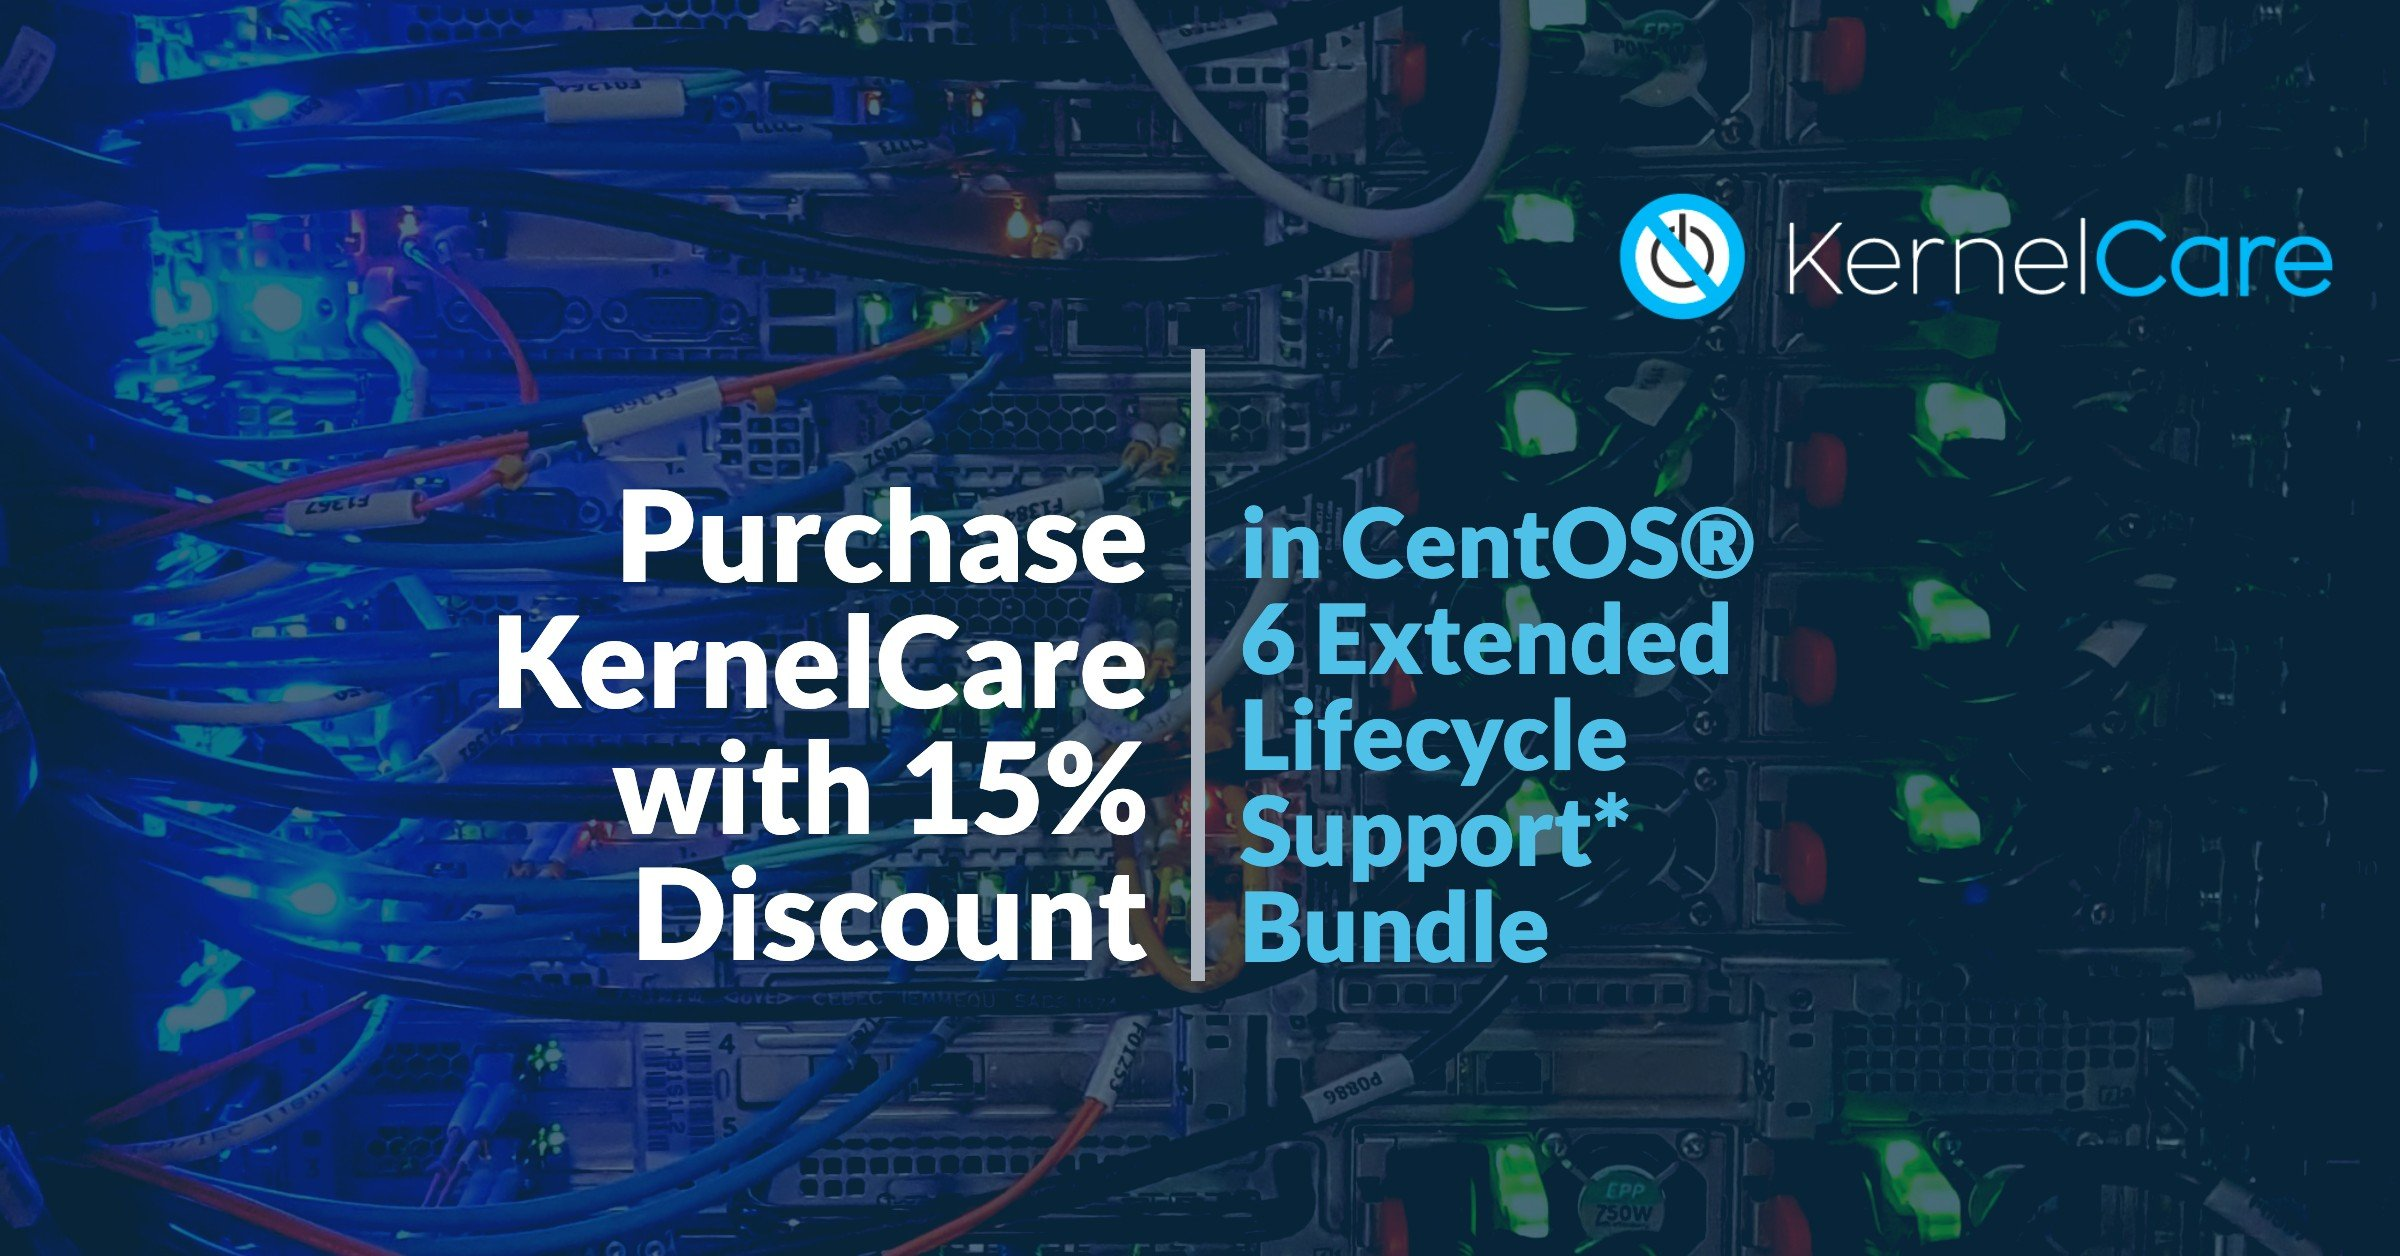 Purchase KernelCare with 15% Discount in CentOS® 6 Extended Lifecycle Support_ Bundle